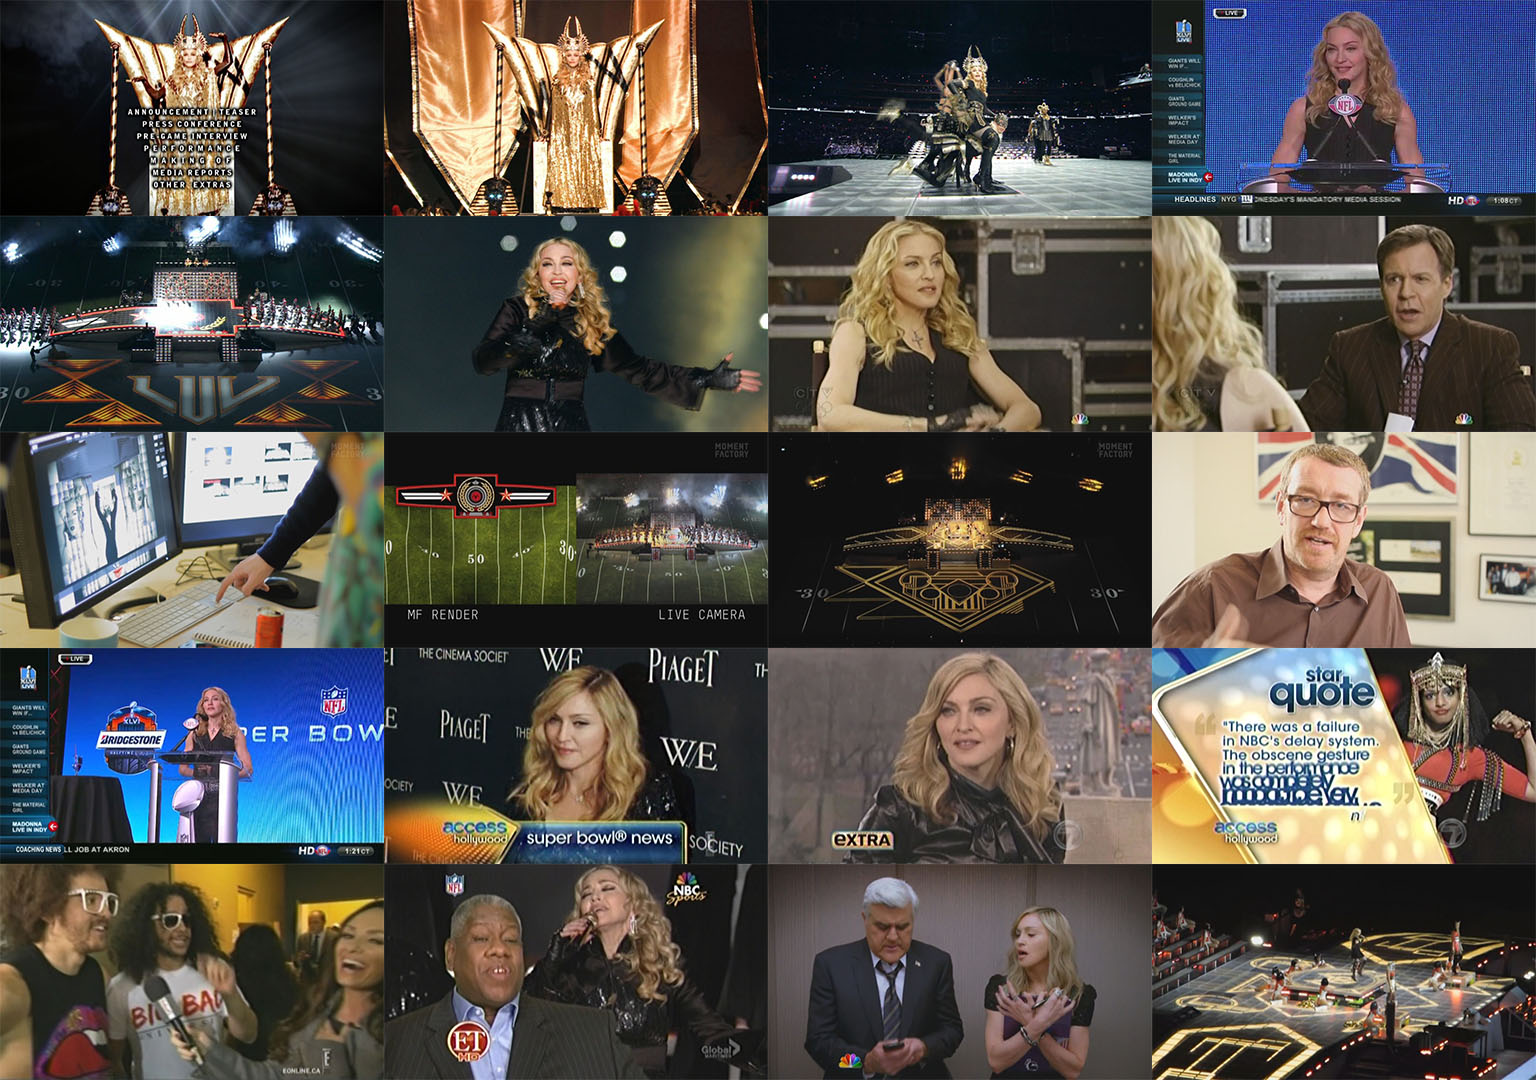 dvd madonna superbowl 2012